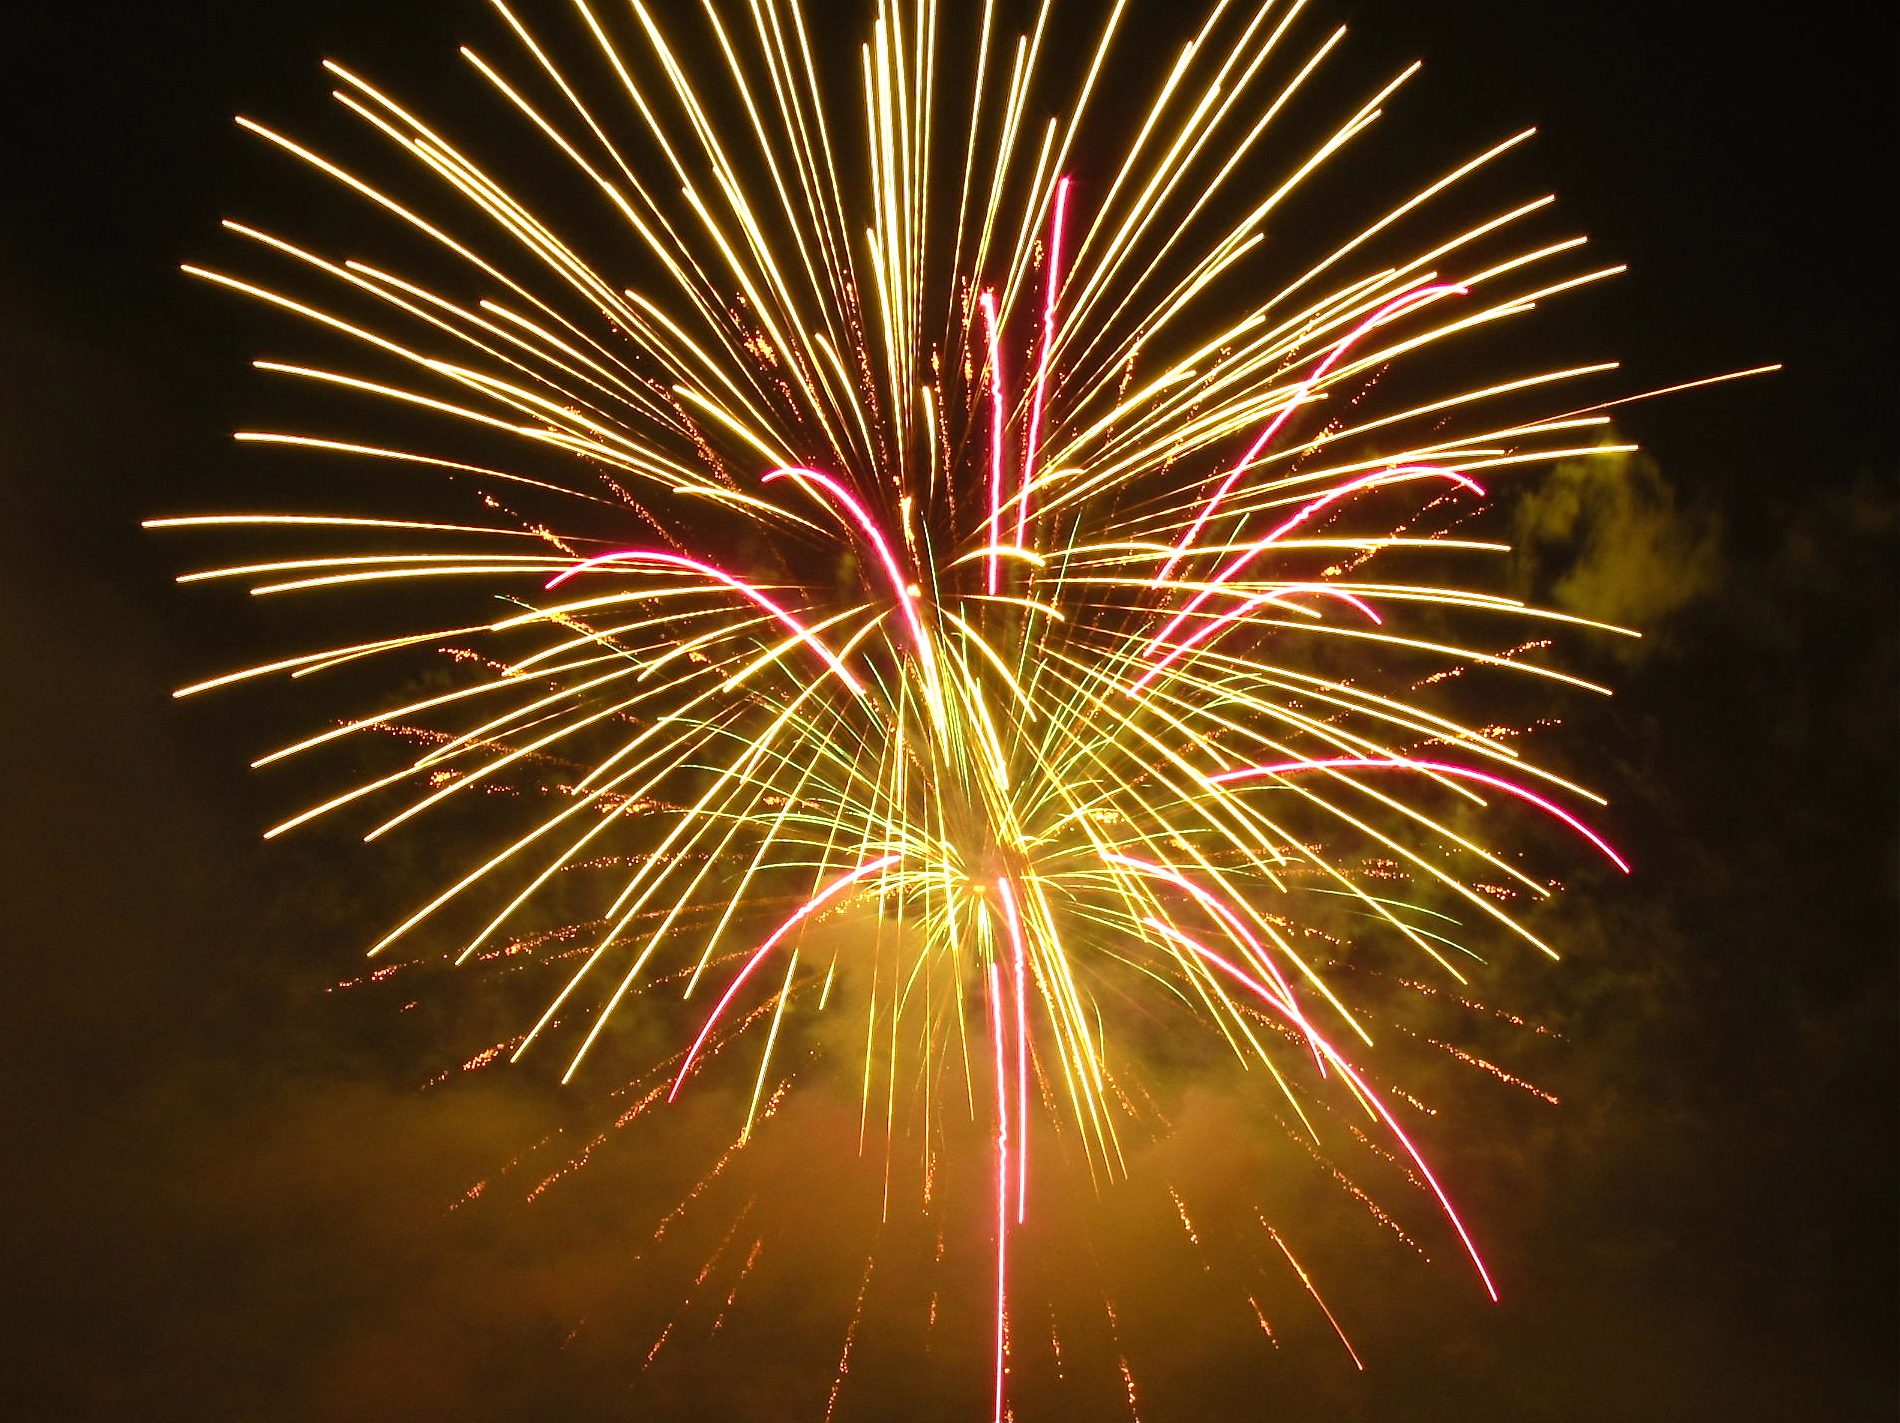 Claremont Fire Fighters Urge Caution Near Fireworks on Independence Day